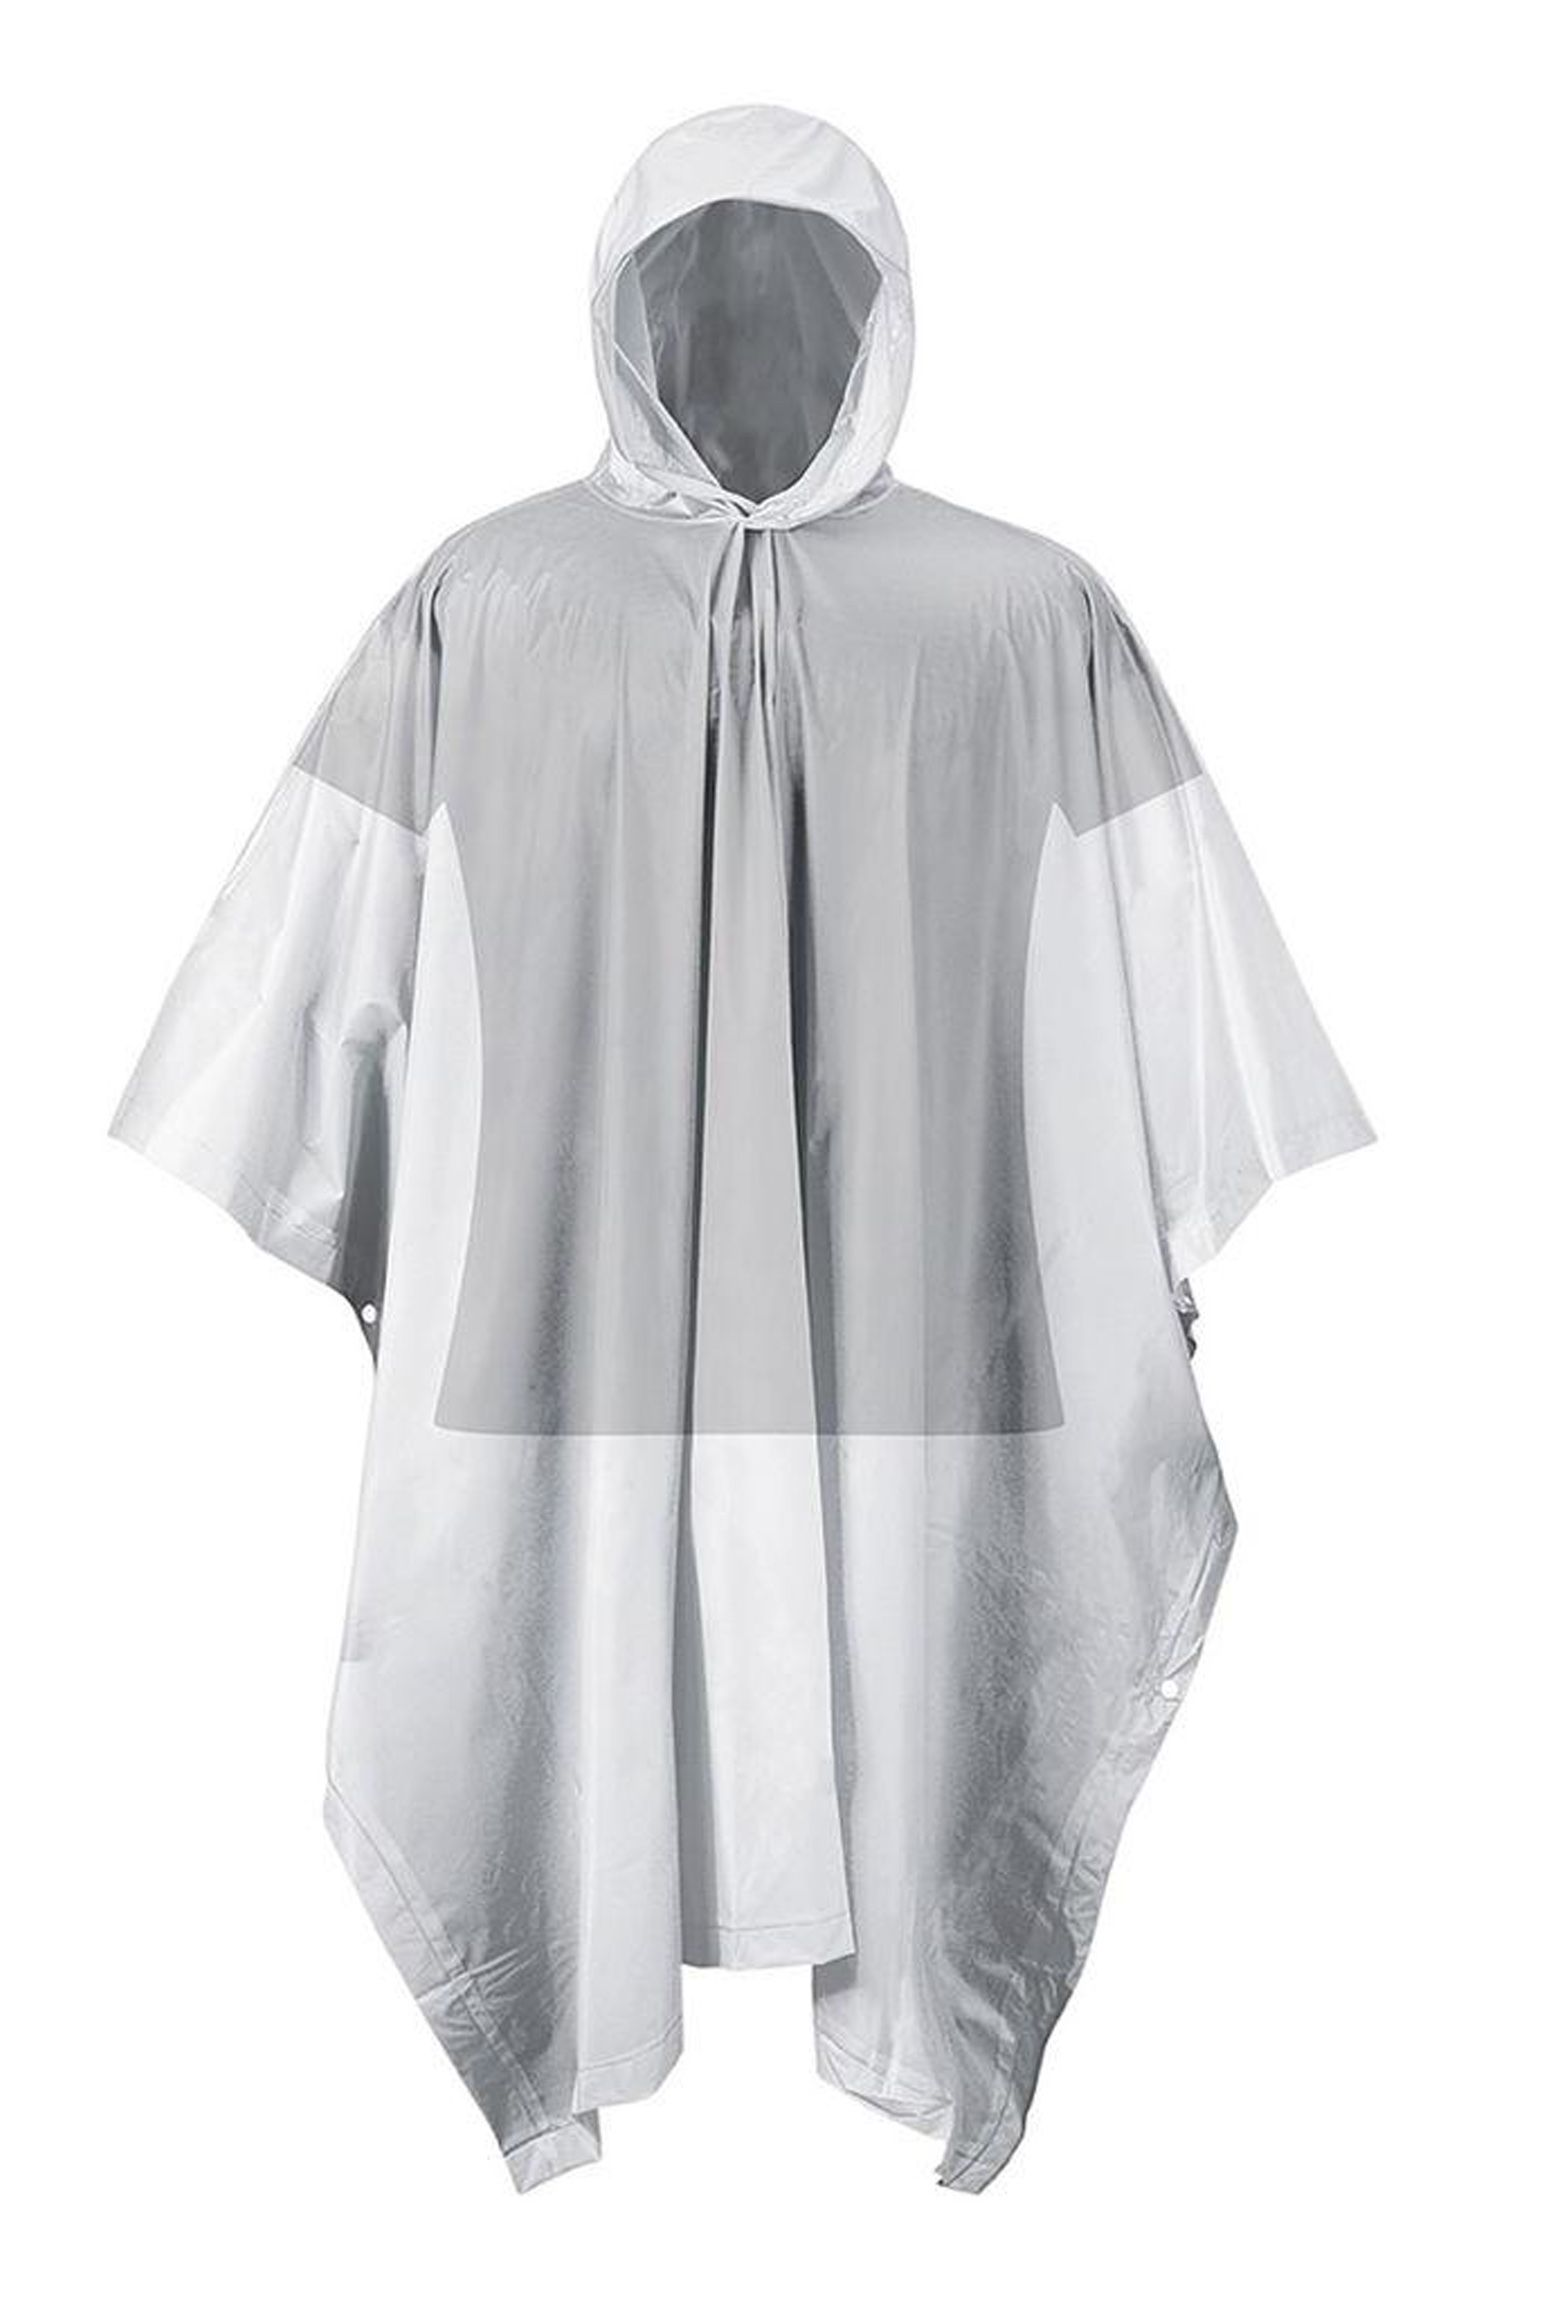 "<p>An easy poncho to throw on at a moment's notice makes standing through sudden downpours much more pleasant. And<em data-redactor-tag=""em"" data-verified=""redactor""> trust us</em>, you don't want to be the person with the umbrella blocking everyone's view. </p><p><em data-redactor-tag=""em"" data-verified=""redactor"">Mossi XT Series Clear Adult Rain Poncho, $9.44, </em><a href=""http://www.homedepot.com/p/Mossi-XT-Series-One-Size-Black-Adult-Rain-Poncho-51-114/203646774?MERCH=REC-_-rv_search_plp_rr-_-NA-_-203646778-_-N"" target=""_blank"" data-tracking-id=""recirc-text-link""><em data-redactor-tag=""em"" data-verified=""redactor"">homedepot.com</em></a></p>"